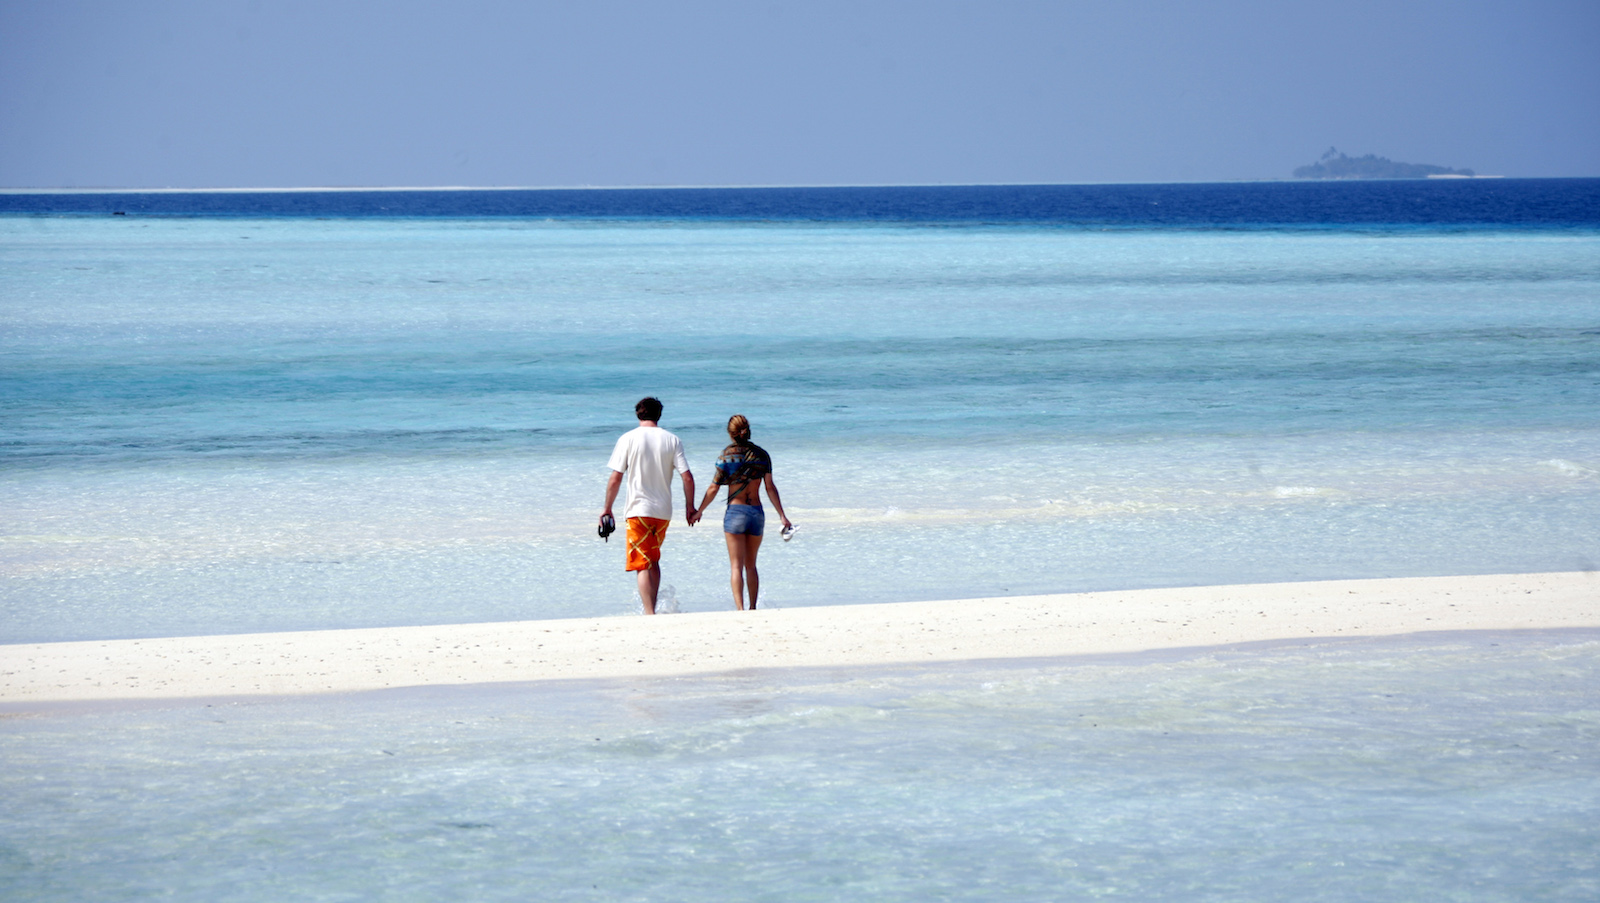 General view shows tourists on the sandy beach of Olhuveli island in Maldives February 15, 2009 .  REUTERS/Charles Platiau  (MALDIVES) - RTXCCET